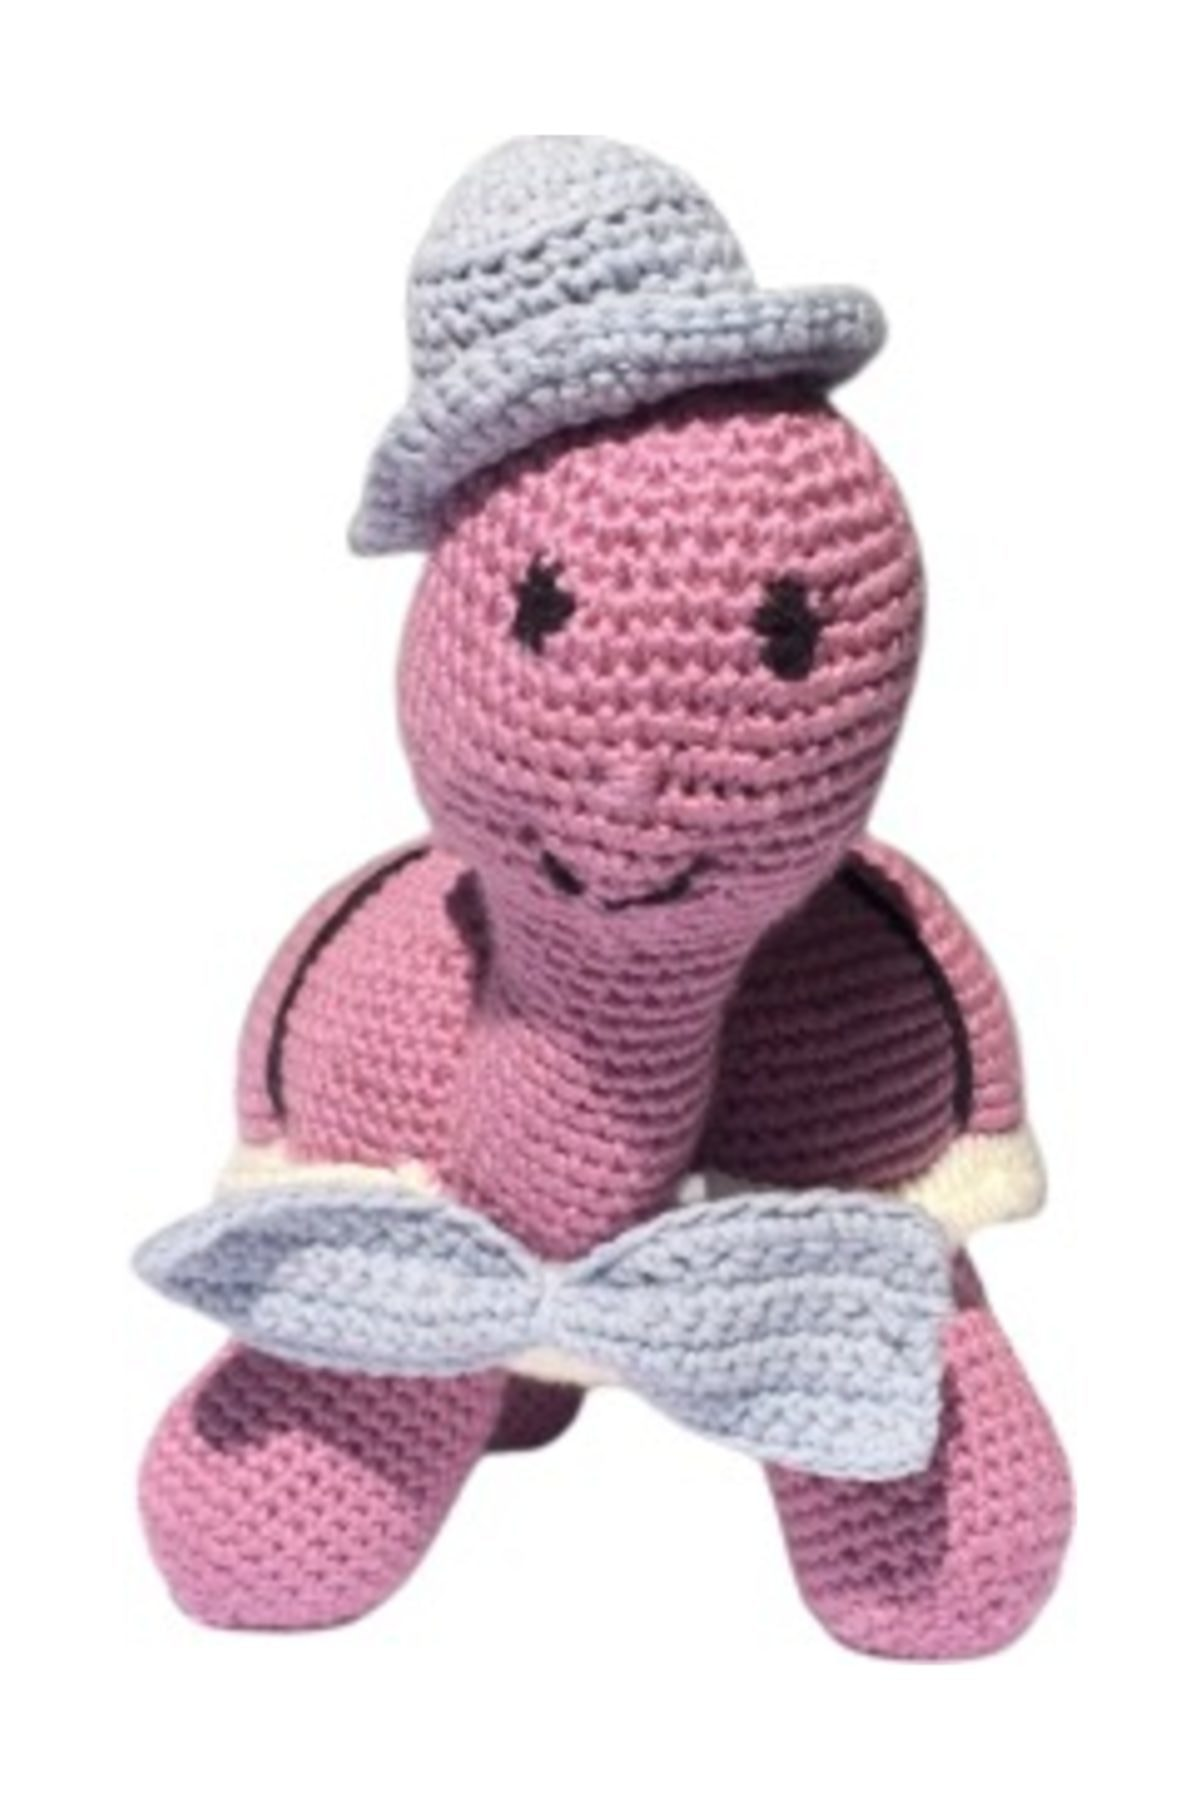 Crochet Toy Avocado Pattern - Red Ted Art - Make crafting with ... | 1800x1200